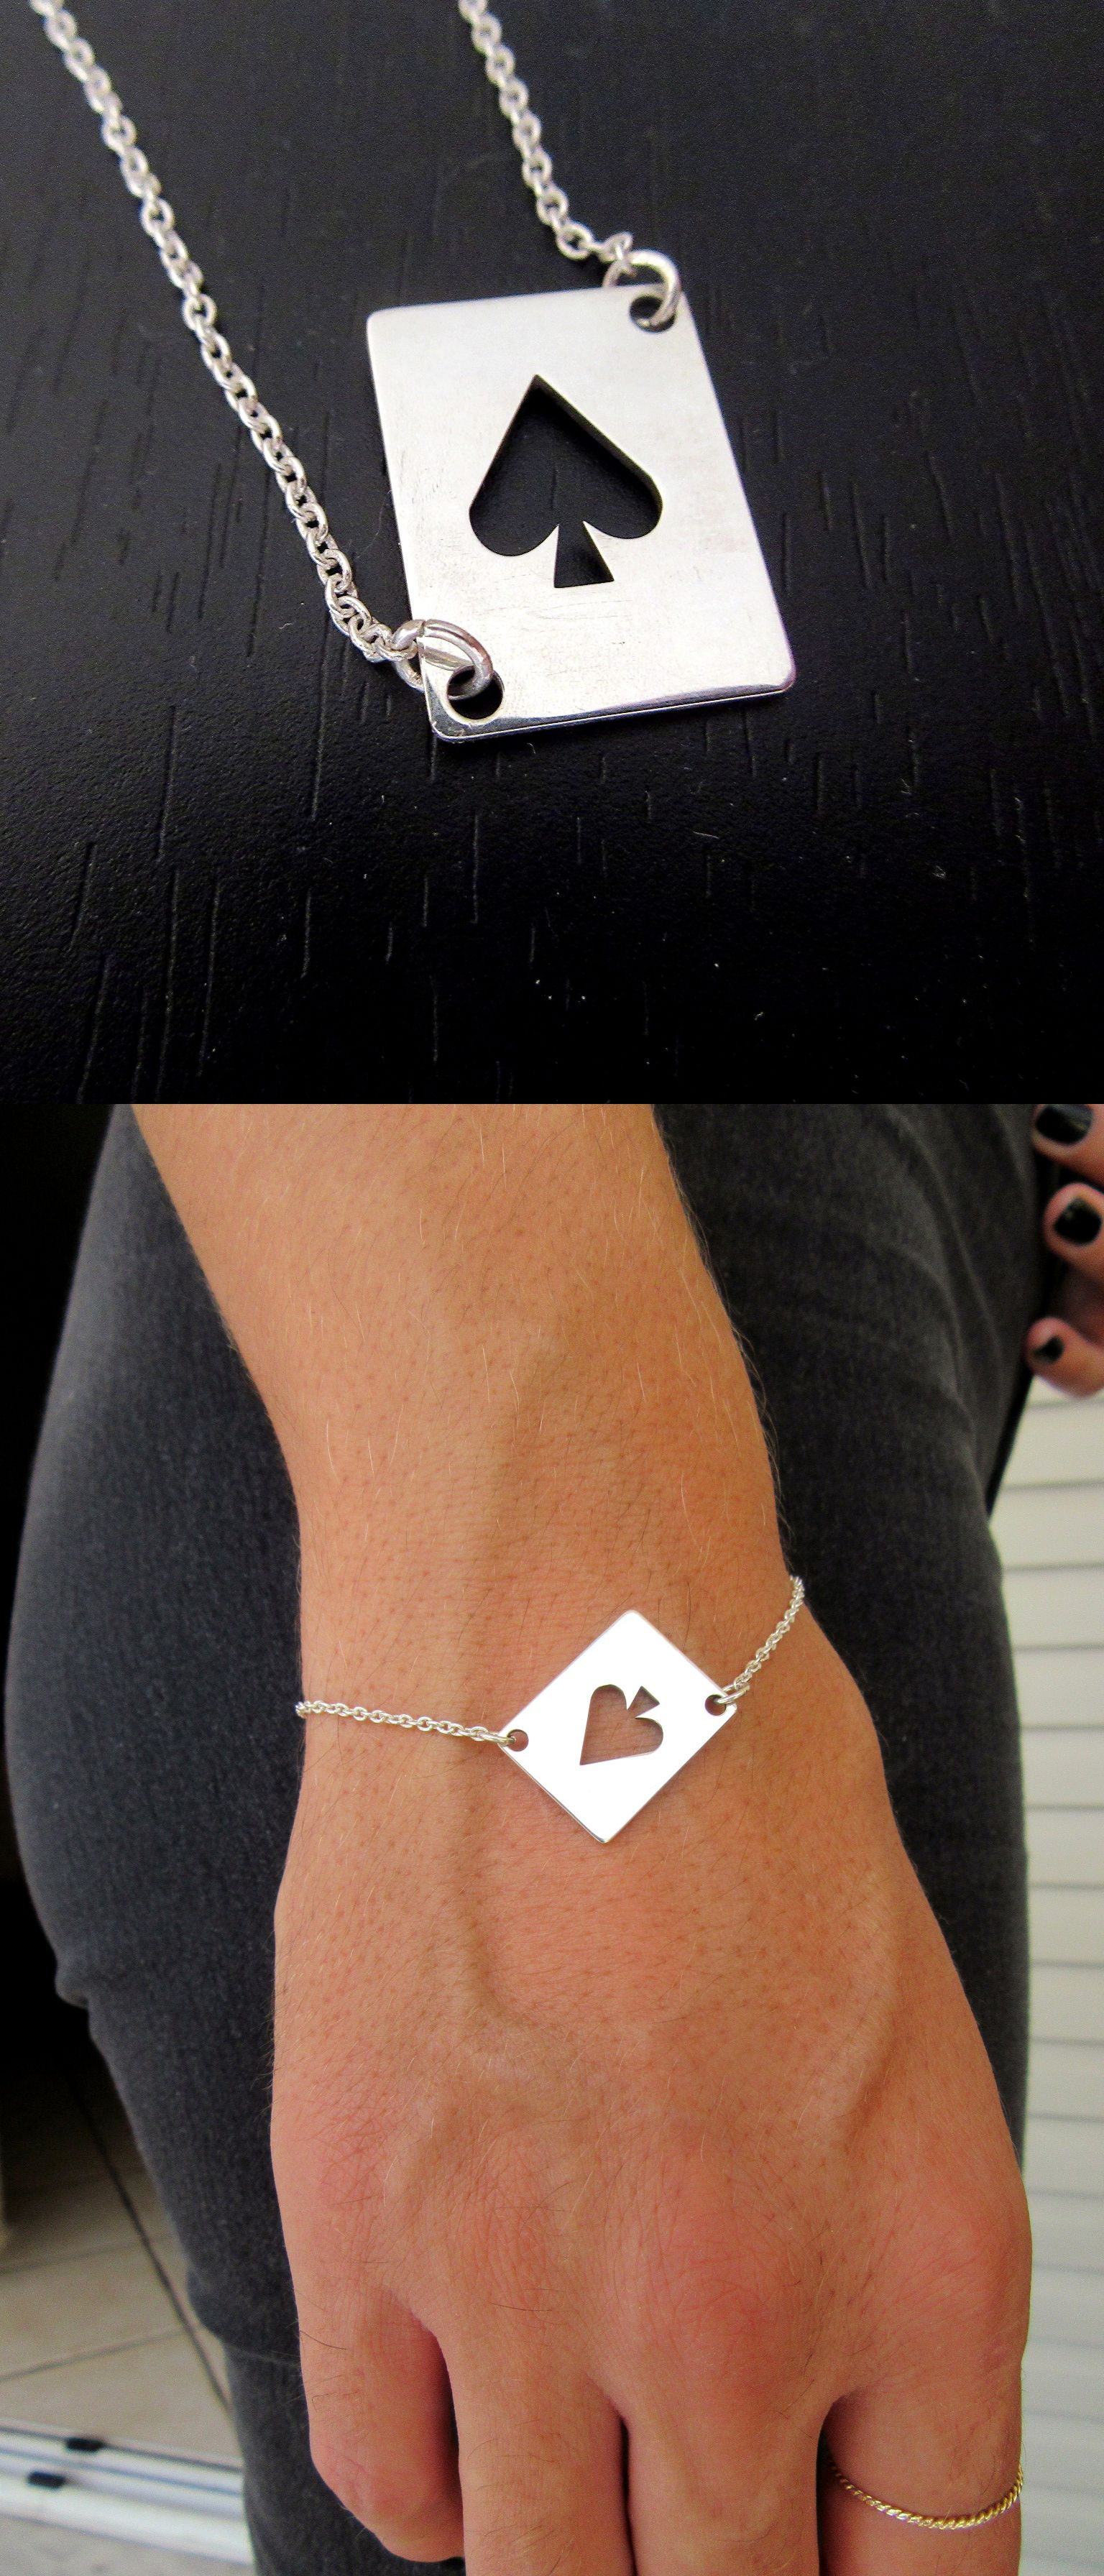 Bracelet Queen Of Spades Dom Ace Feminism Por Spade Jewelry Playing Card